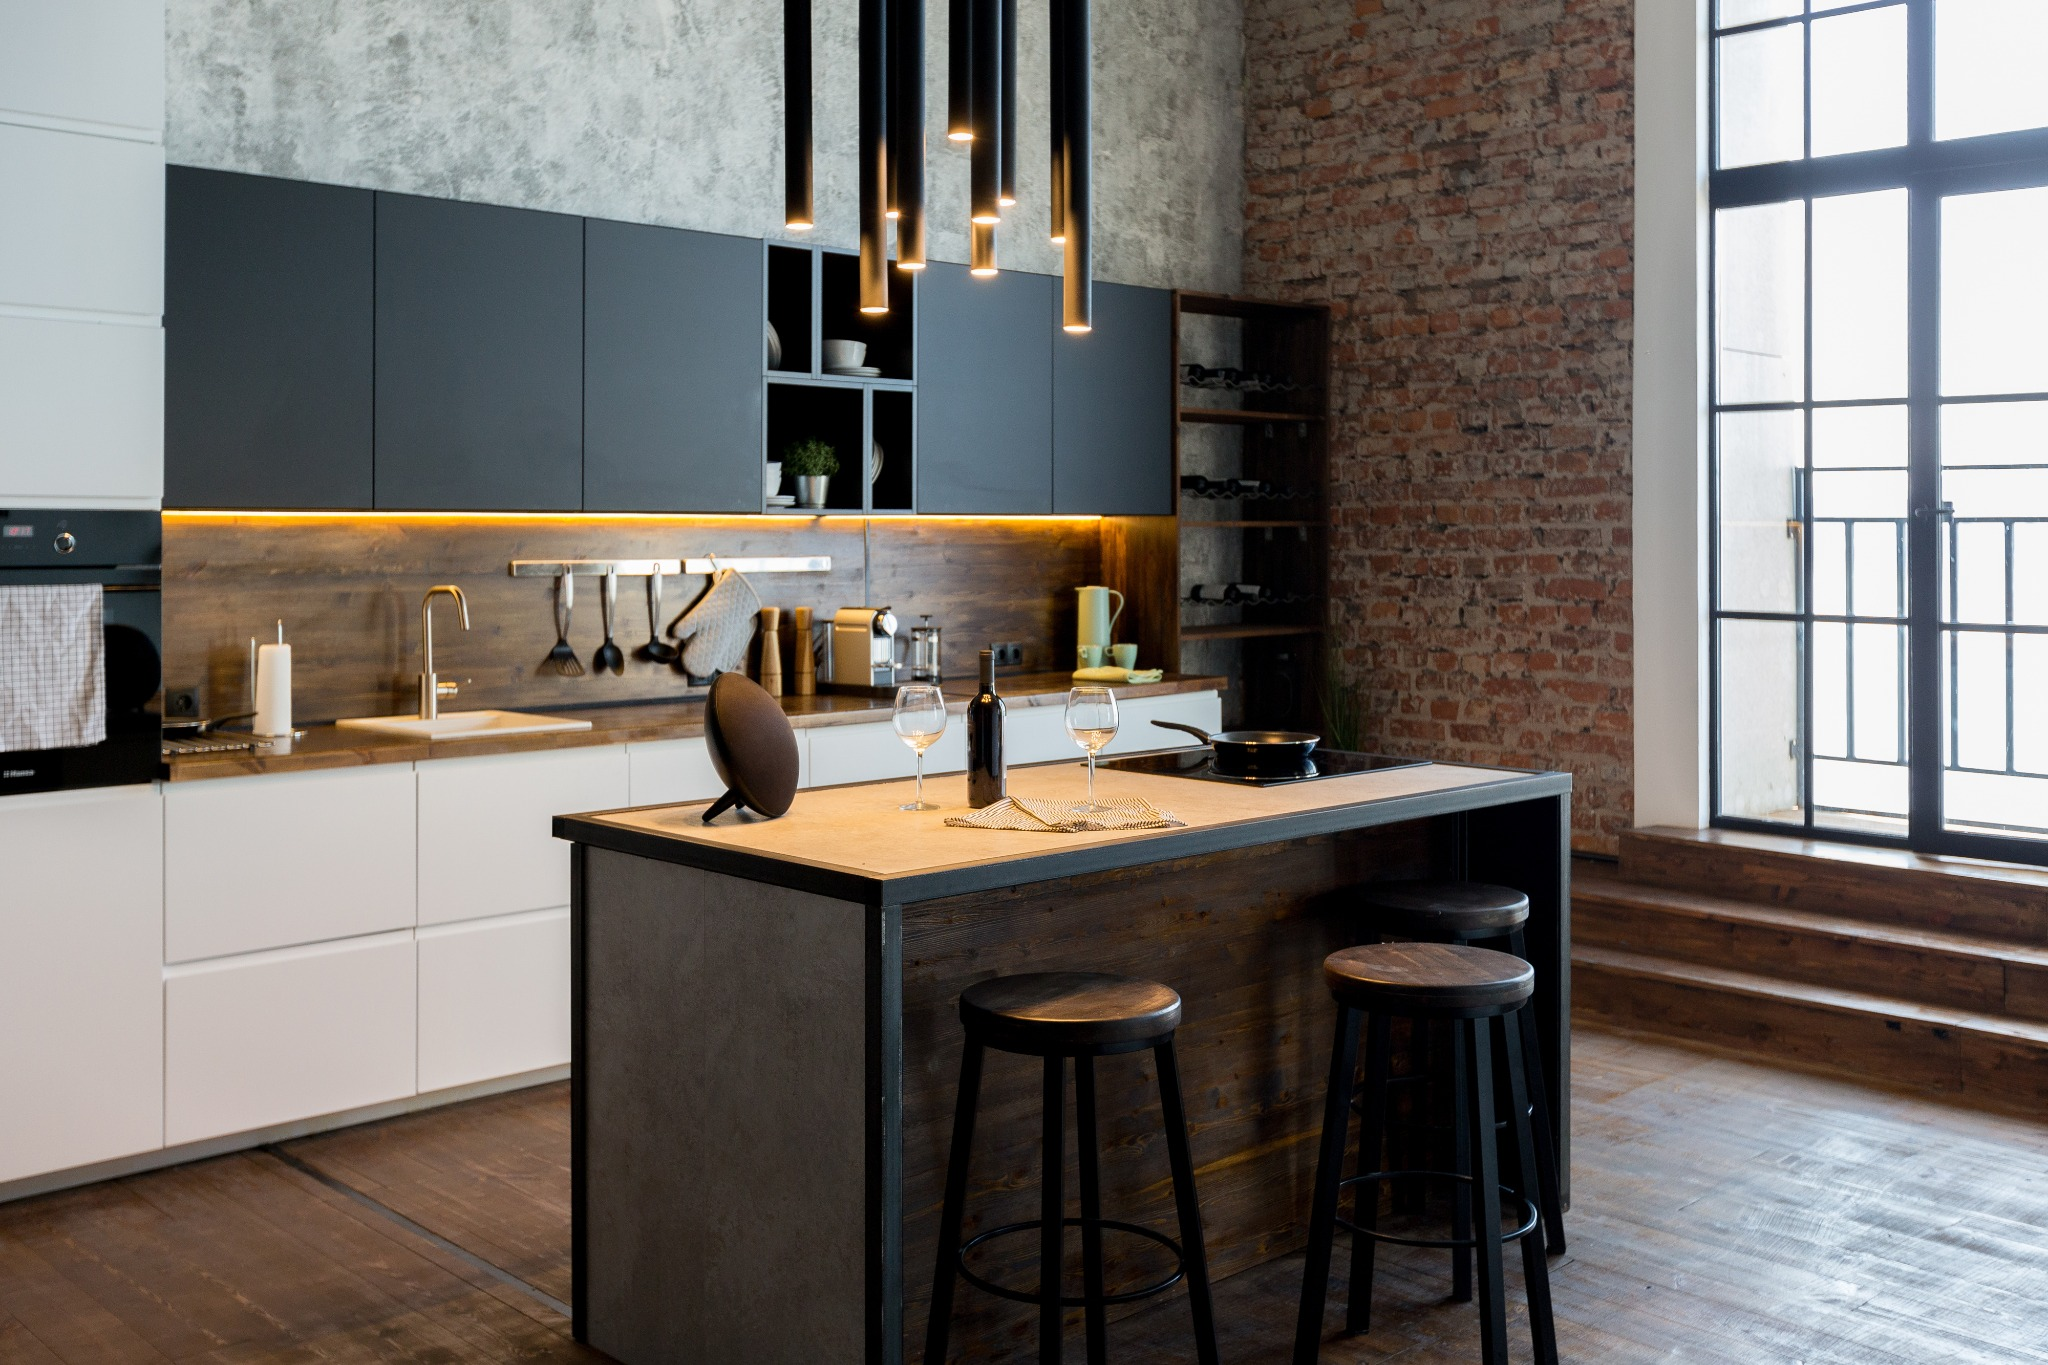 A warm and inviting looking industrial kitchen with built-in cabinets and a kitchen island.